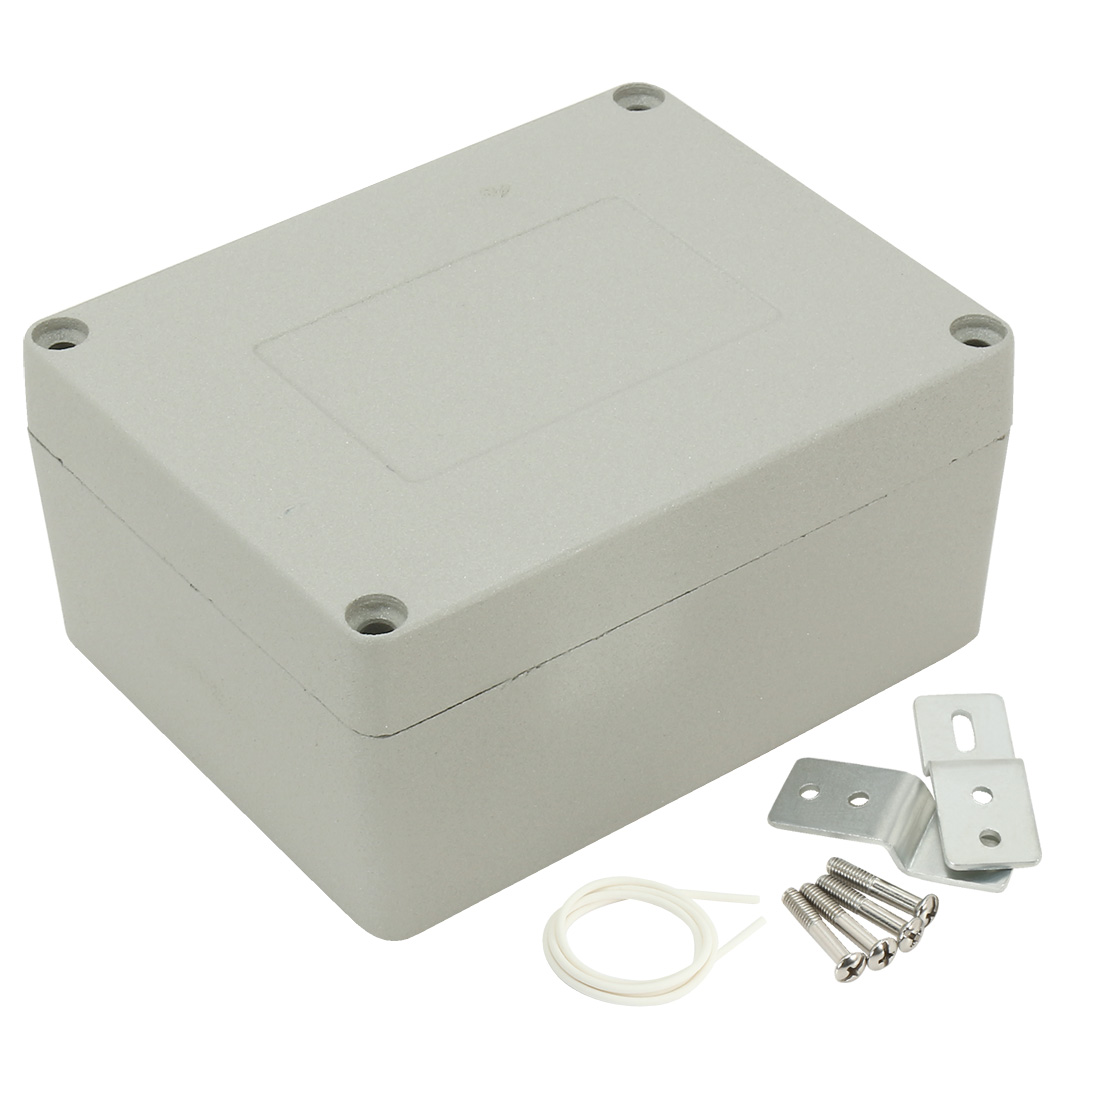 """4.5""""x3.5""""x2.3""""(115mmx90mmx58mm) Aluminum Junction Box Universal Electric Project Enclosure w Two Horns"""